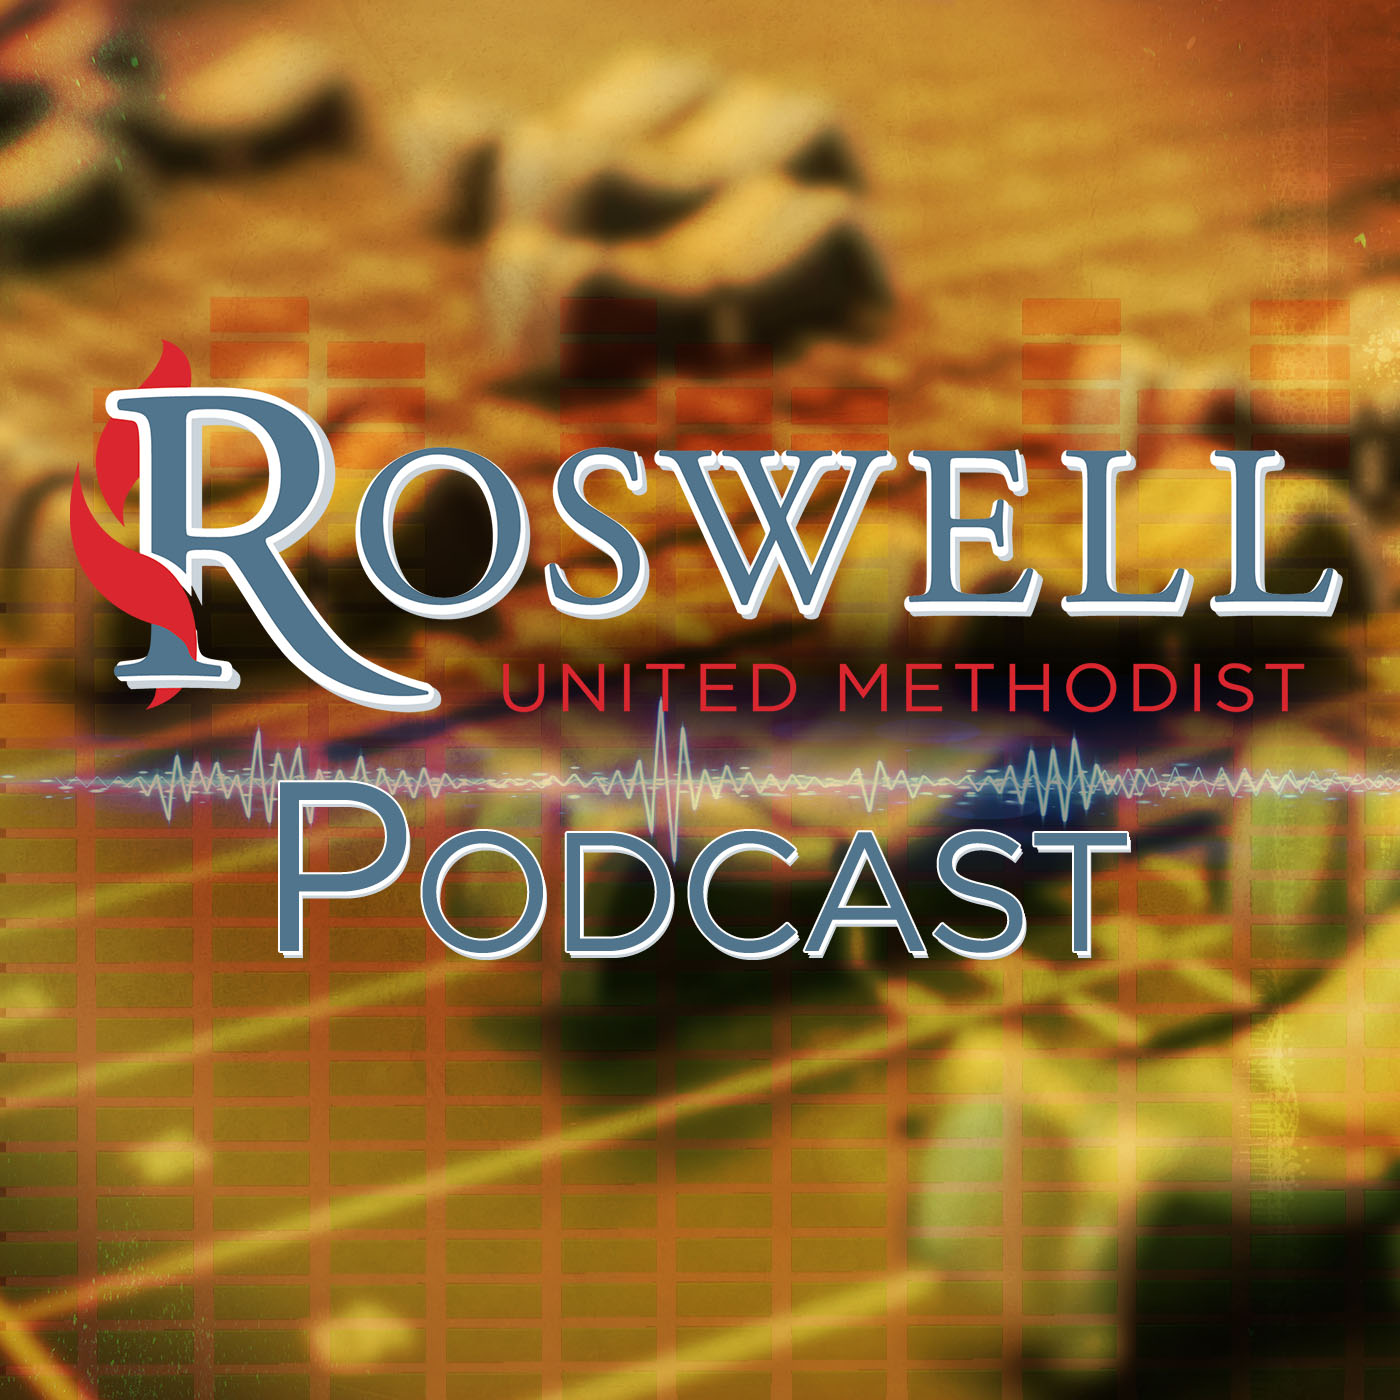 The Roswell United Methodist Church podcast show image